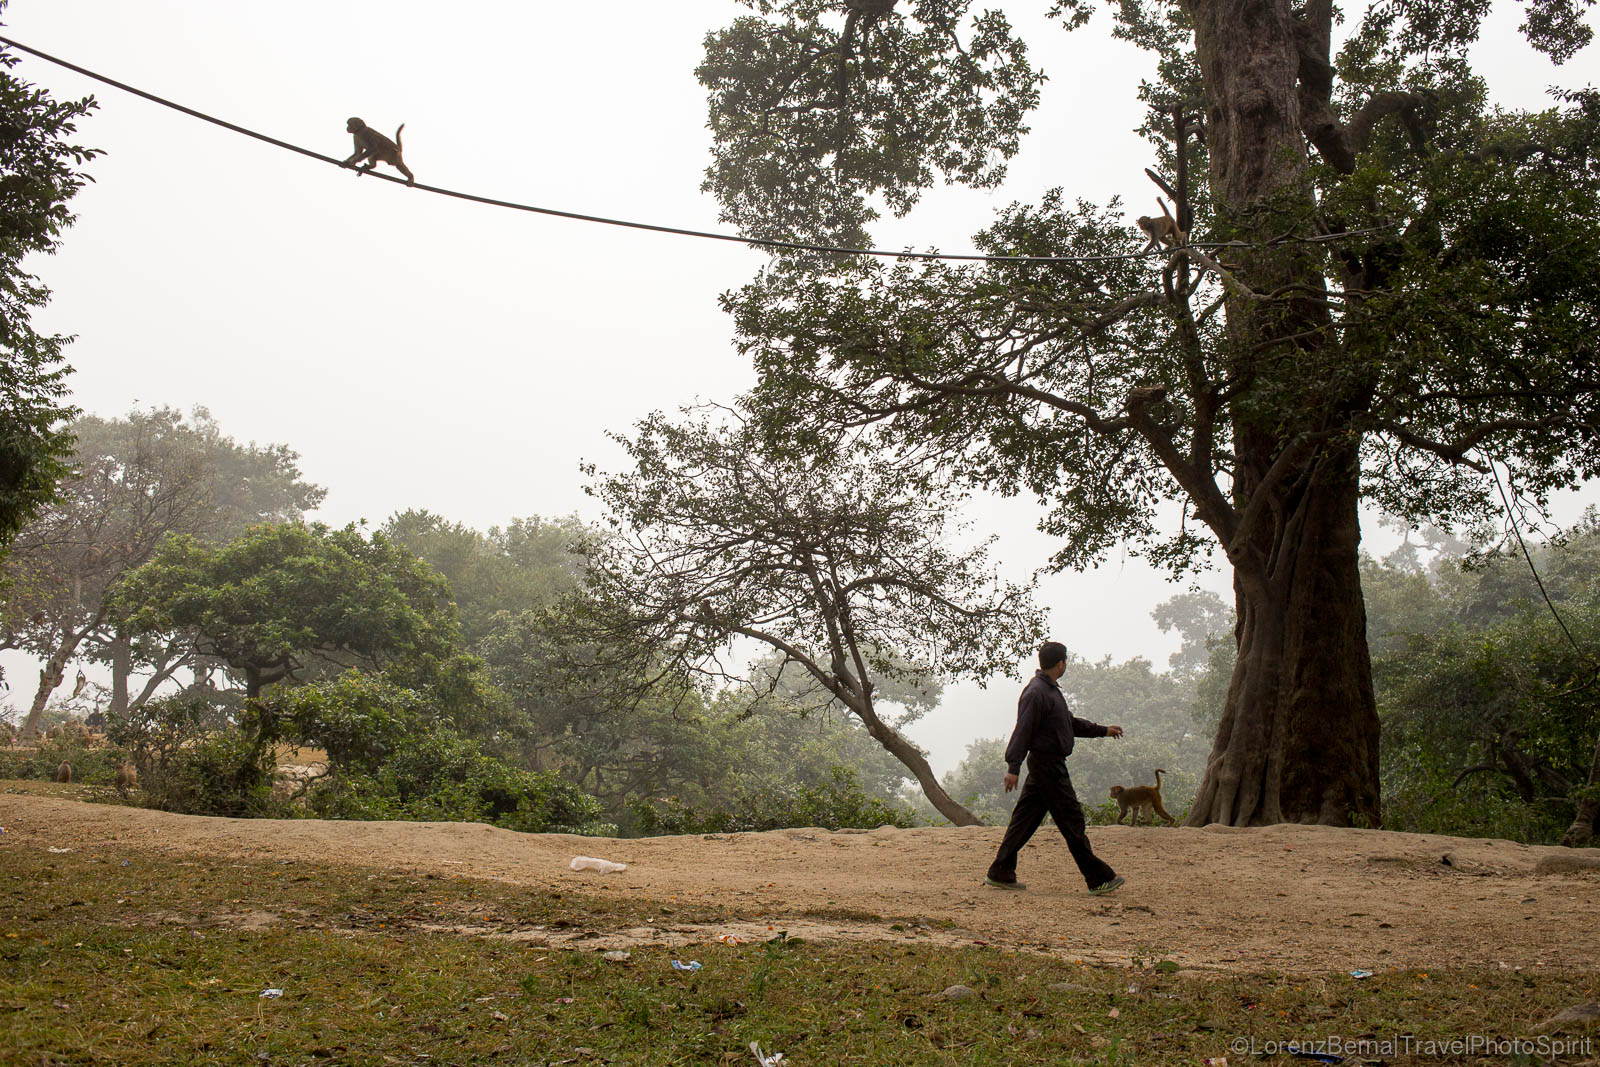 A local man walking in the Sleshmantak Forest of Pashupatinath, Kathmandhu, while a monkey is walking on a electrical wire.